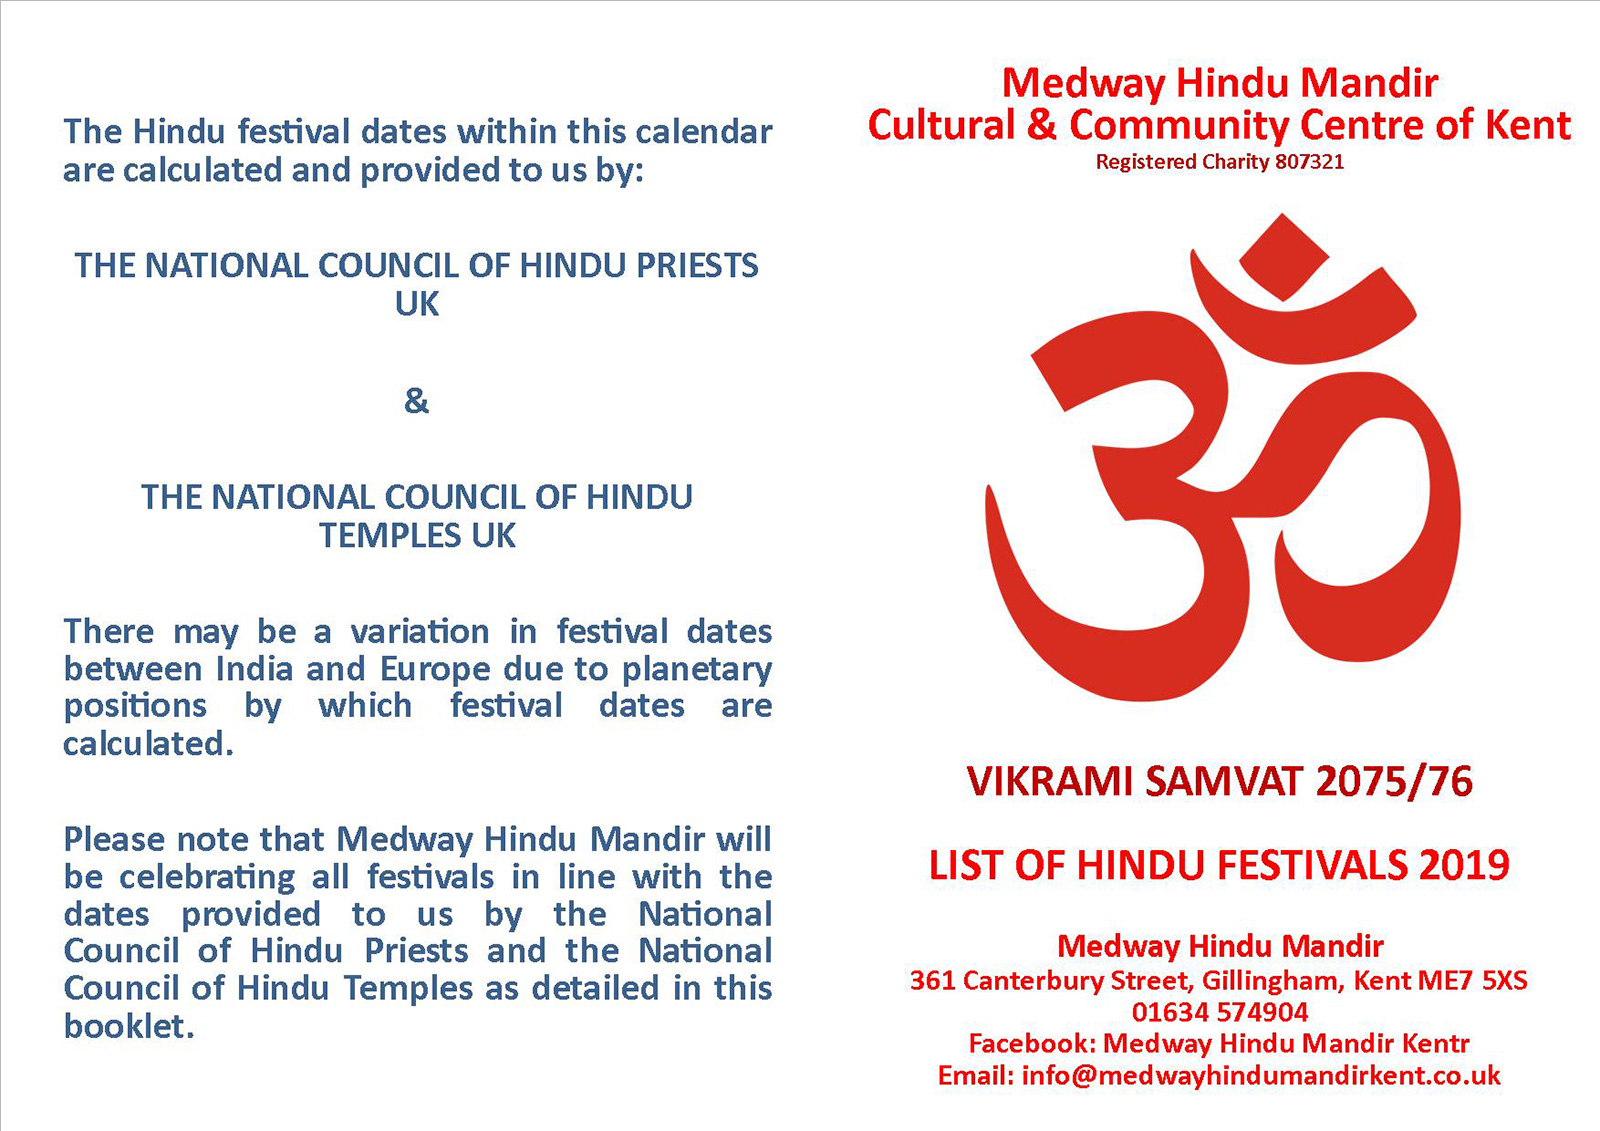 LIST OF HINDU FESTIVALS 2019 - Medway Hindu Mandir Cultural & Community Centre of Kent